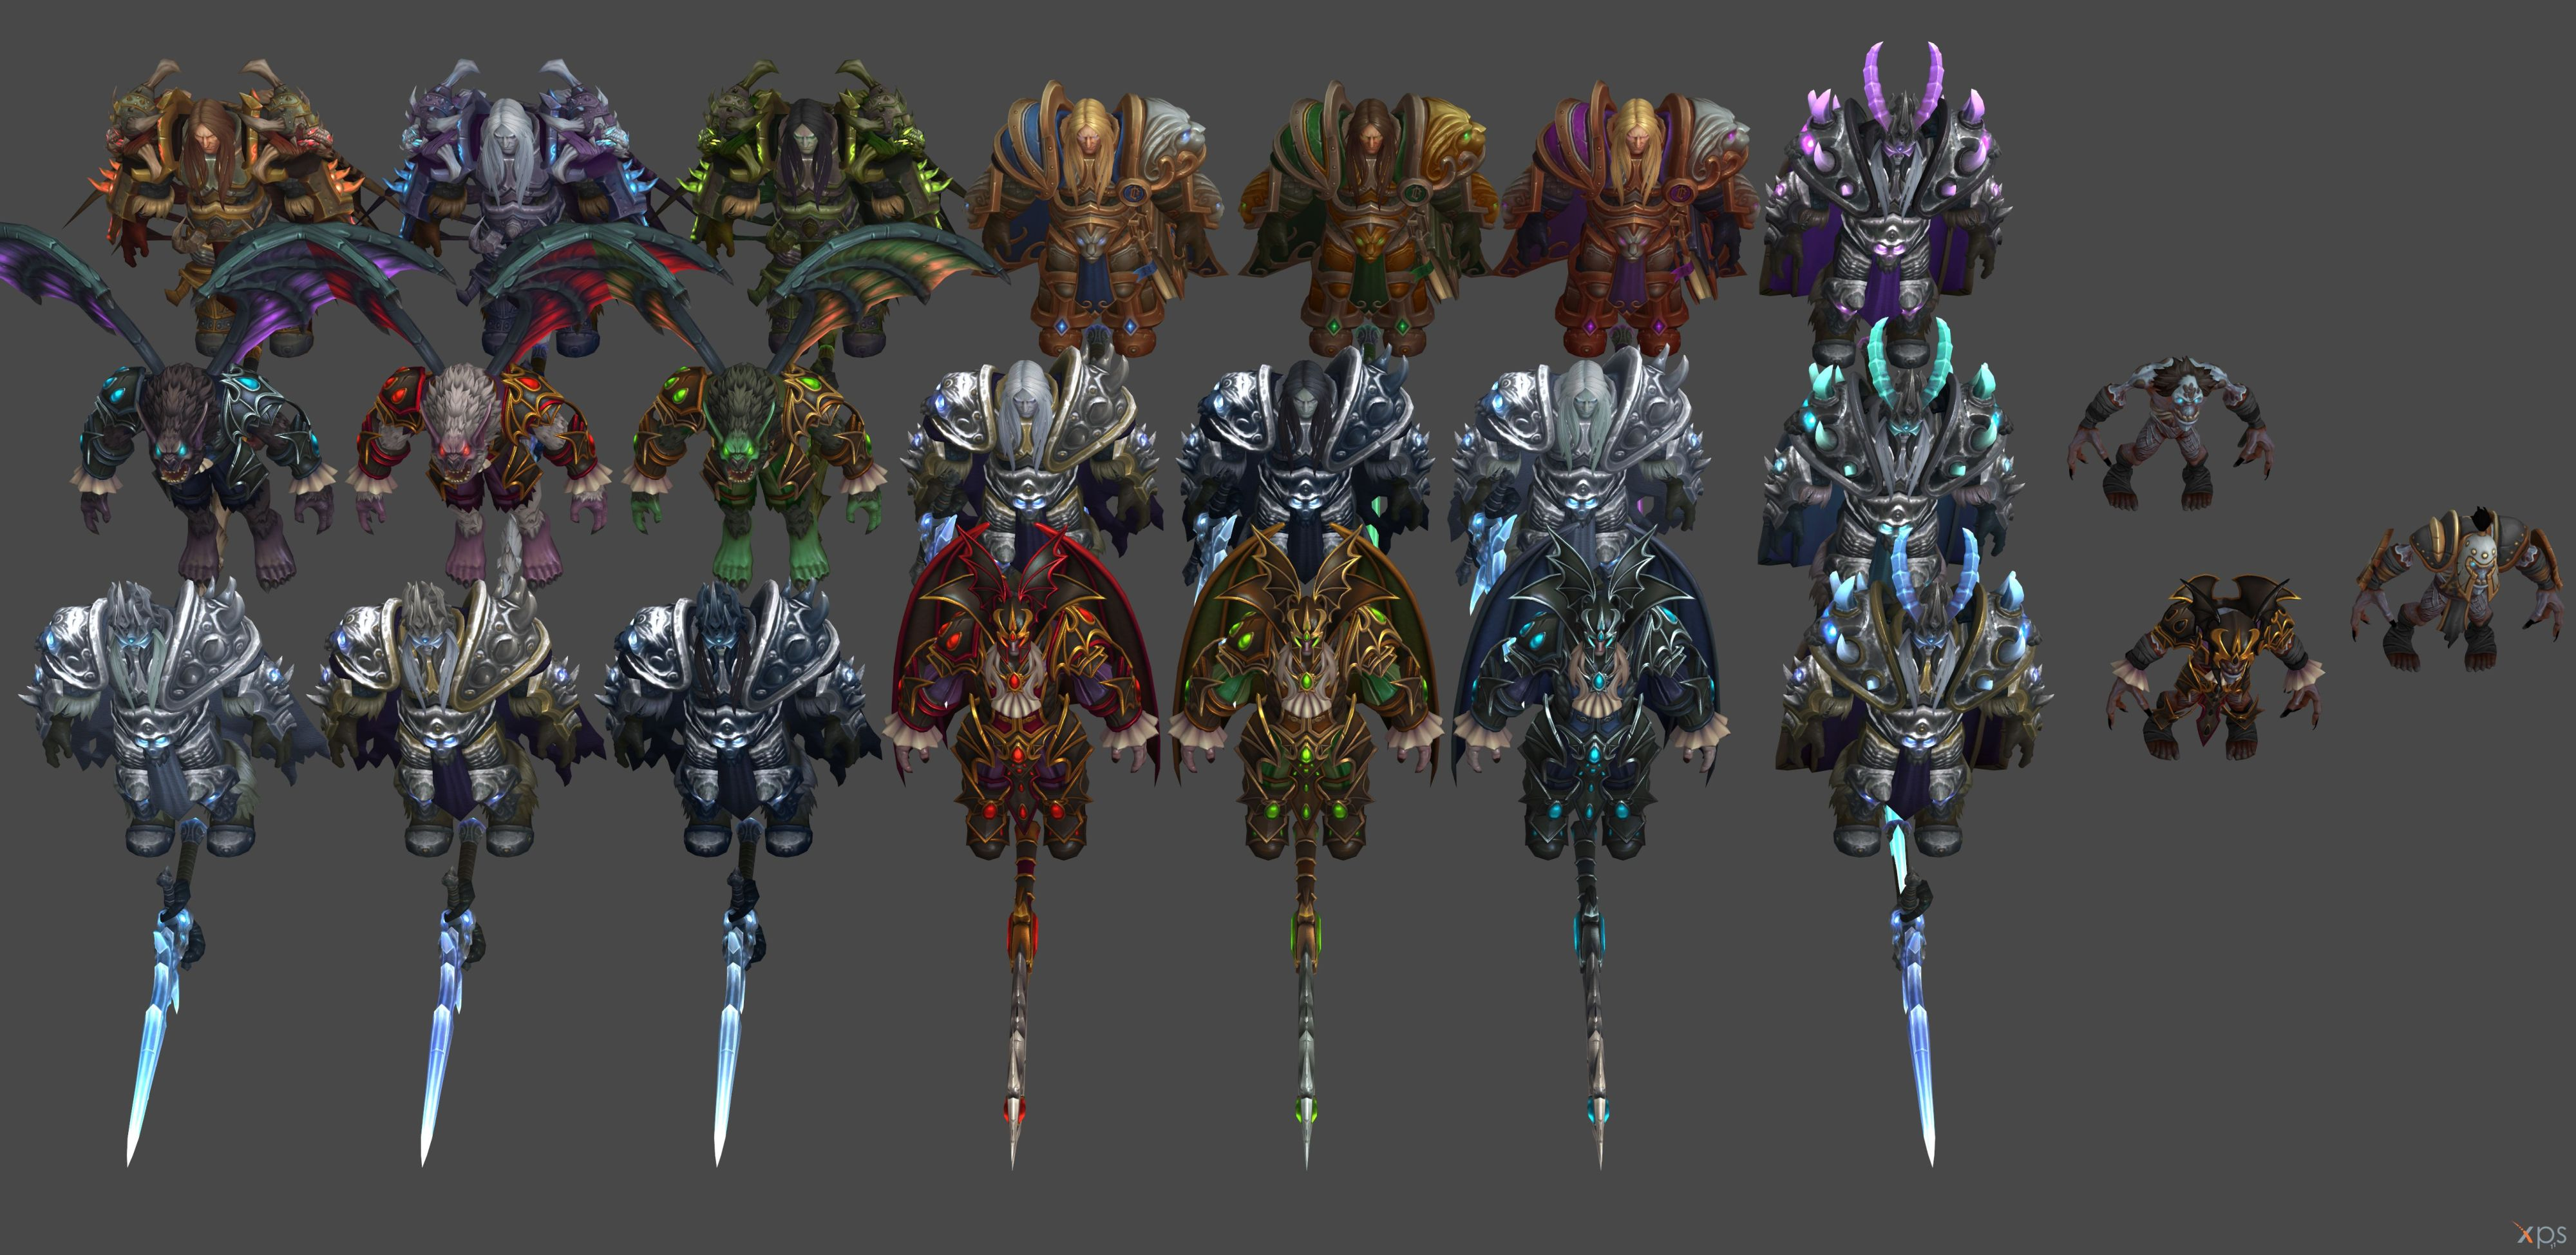 Heroes Of The Storm Arthas Pack Xps Only By Lezisell On Deviantart Talent builds, playstyle, matchups welcome to our guide for arthas, a tank in heroes of the storm. heroes of the storm arthas pack xps